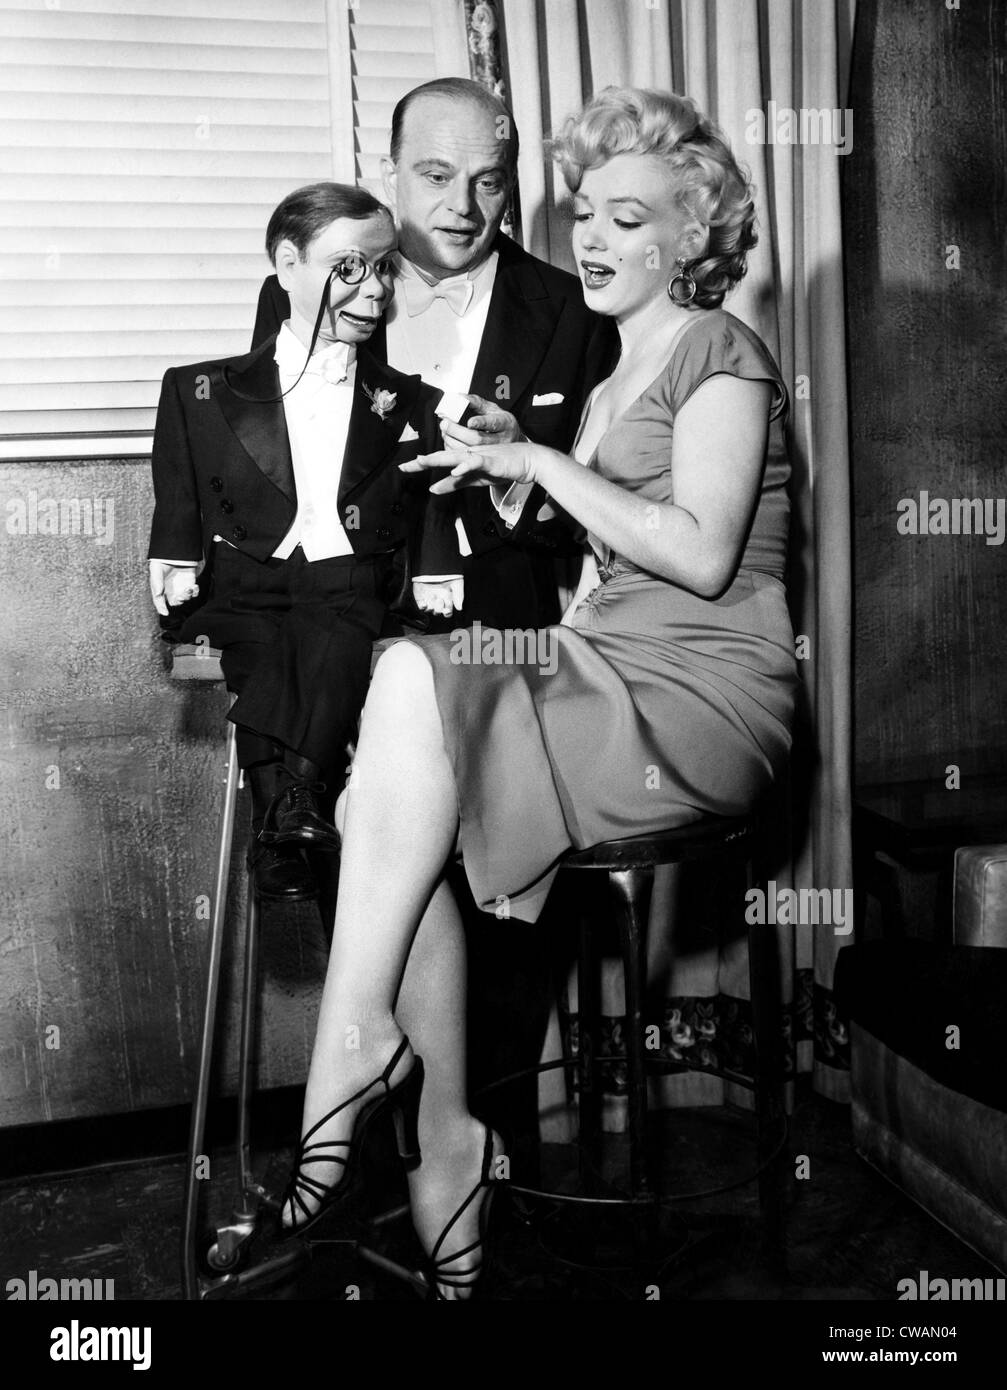 Edgar Bergen (center), and Marilyn Monroe (right), converse with ventriloquist dummy Charlie MaCarthy (left), 1952. - Stock Image